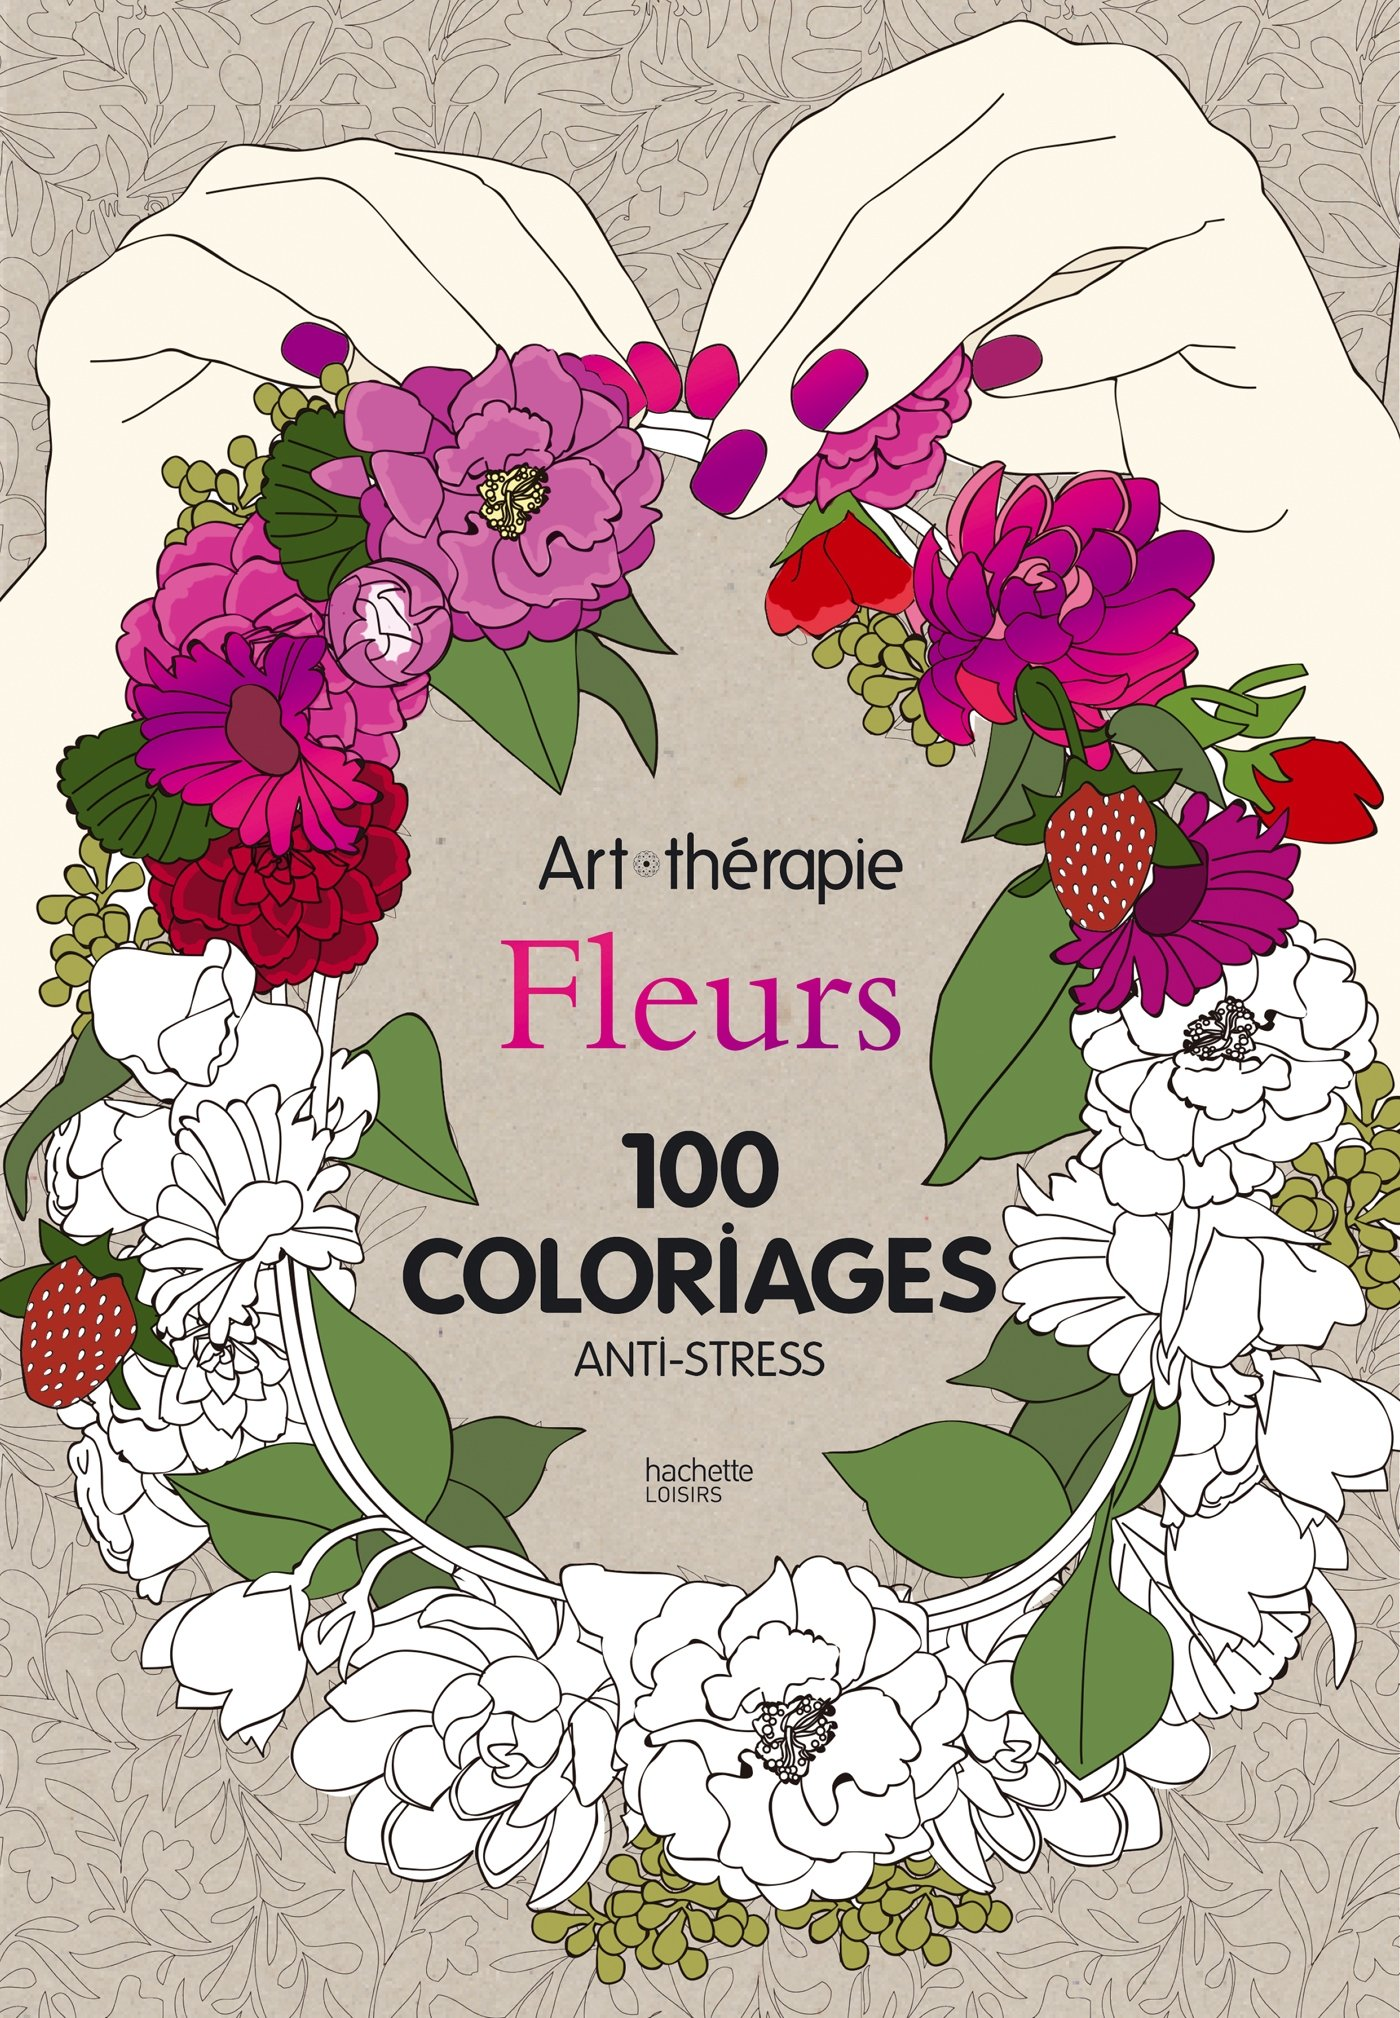 Art Therapie Fleurs 100 coloriages anti stress French Edition Lidia Kostanek Hachette Amazon Books